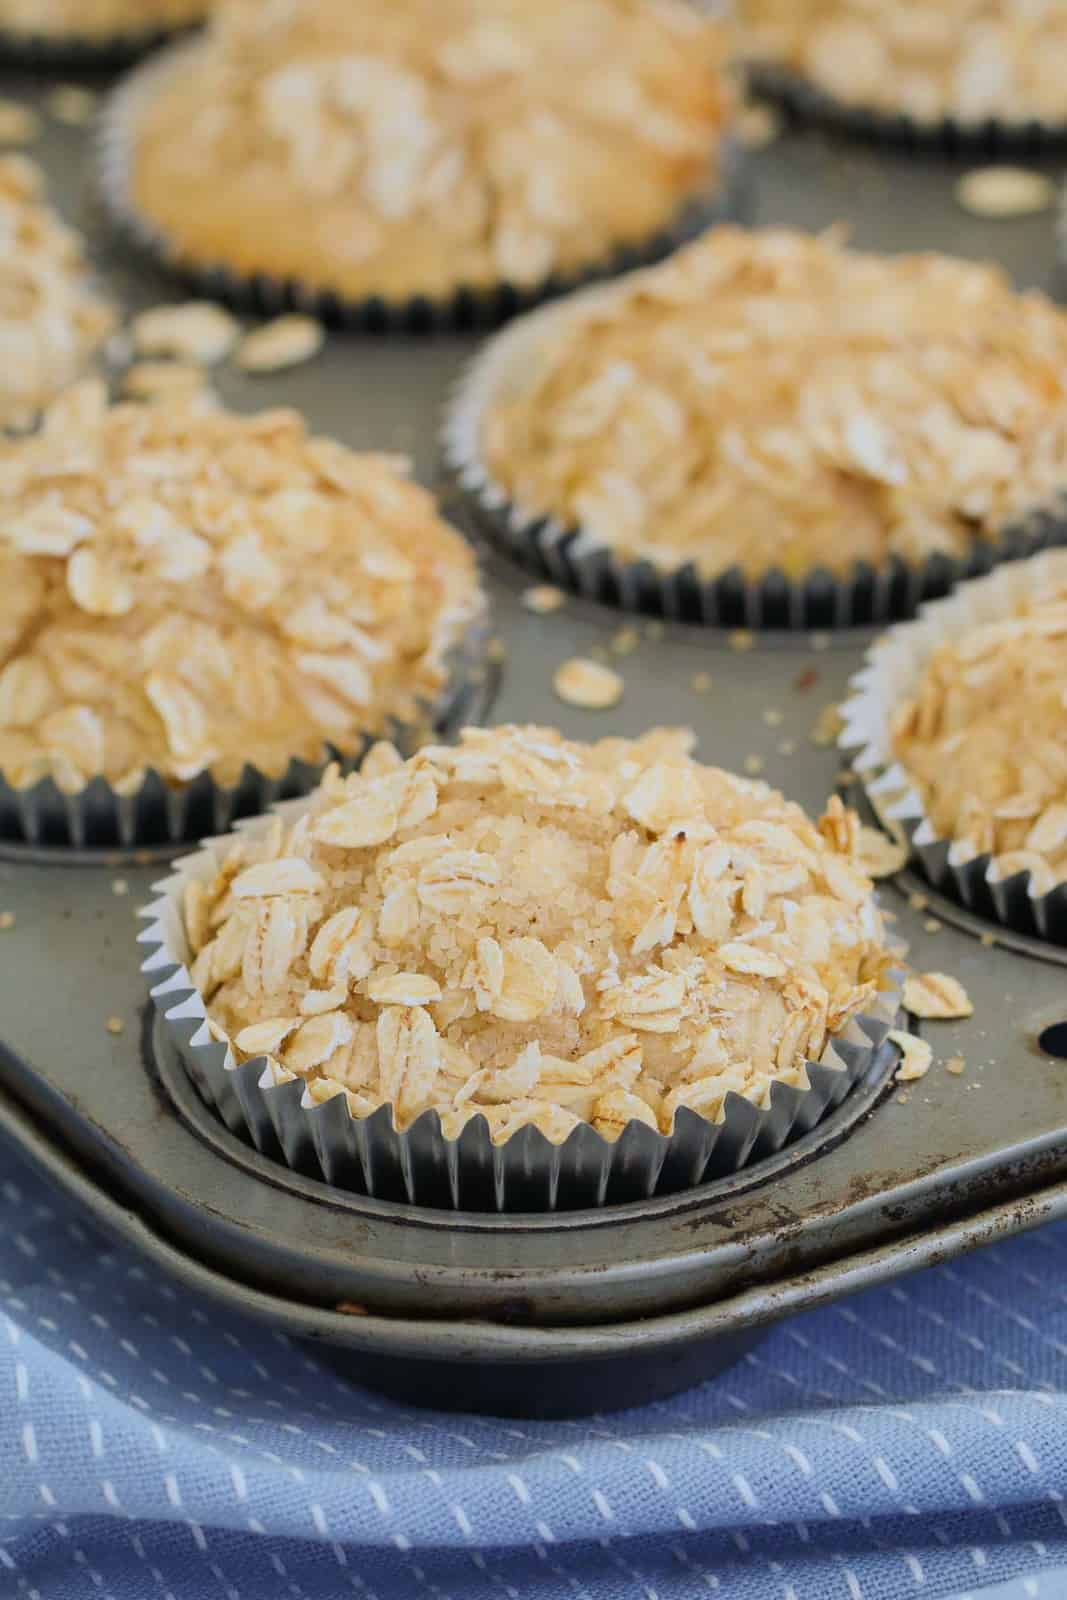 A close up shot of baked apple oat muffins in baking tin.